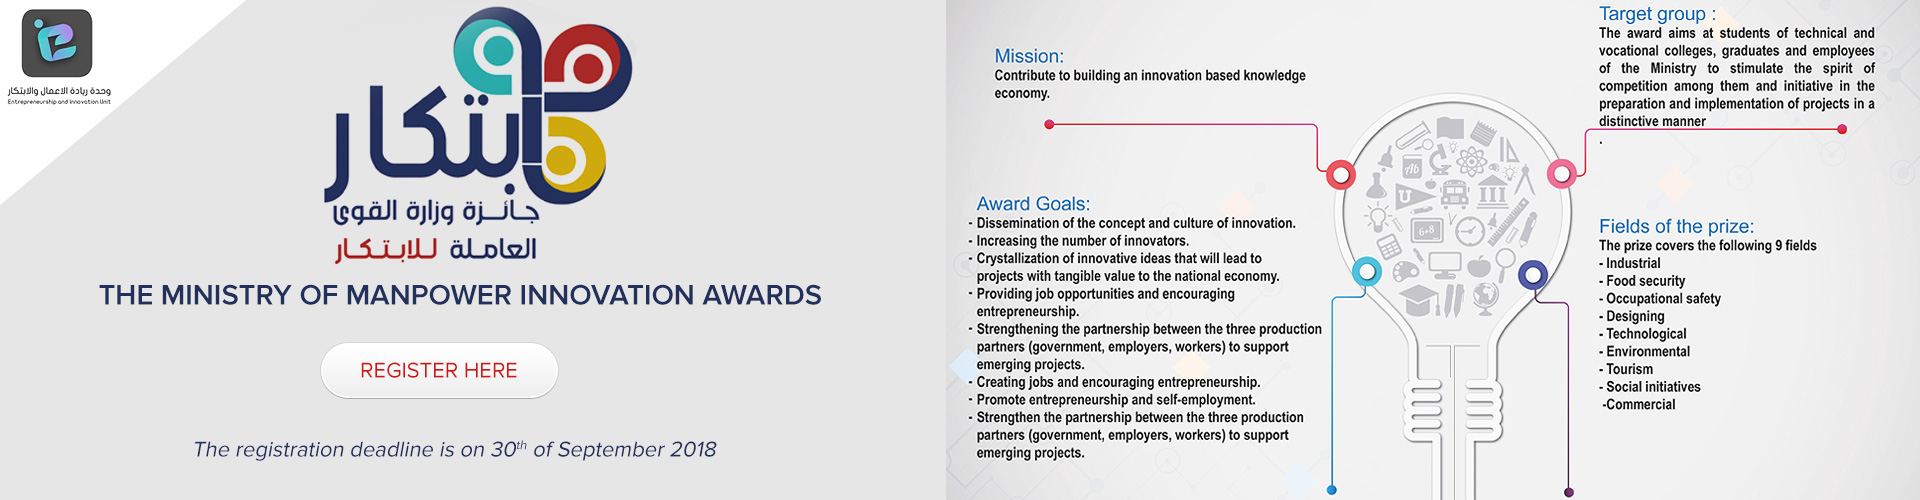 T&C of Ministry of Manpower Innovation Award